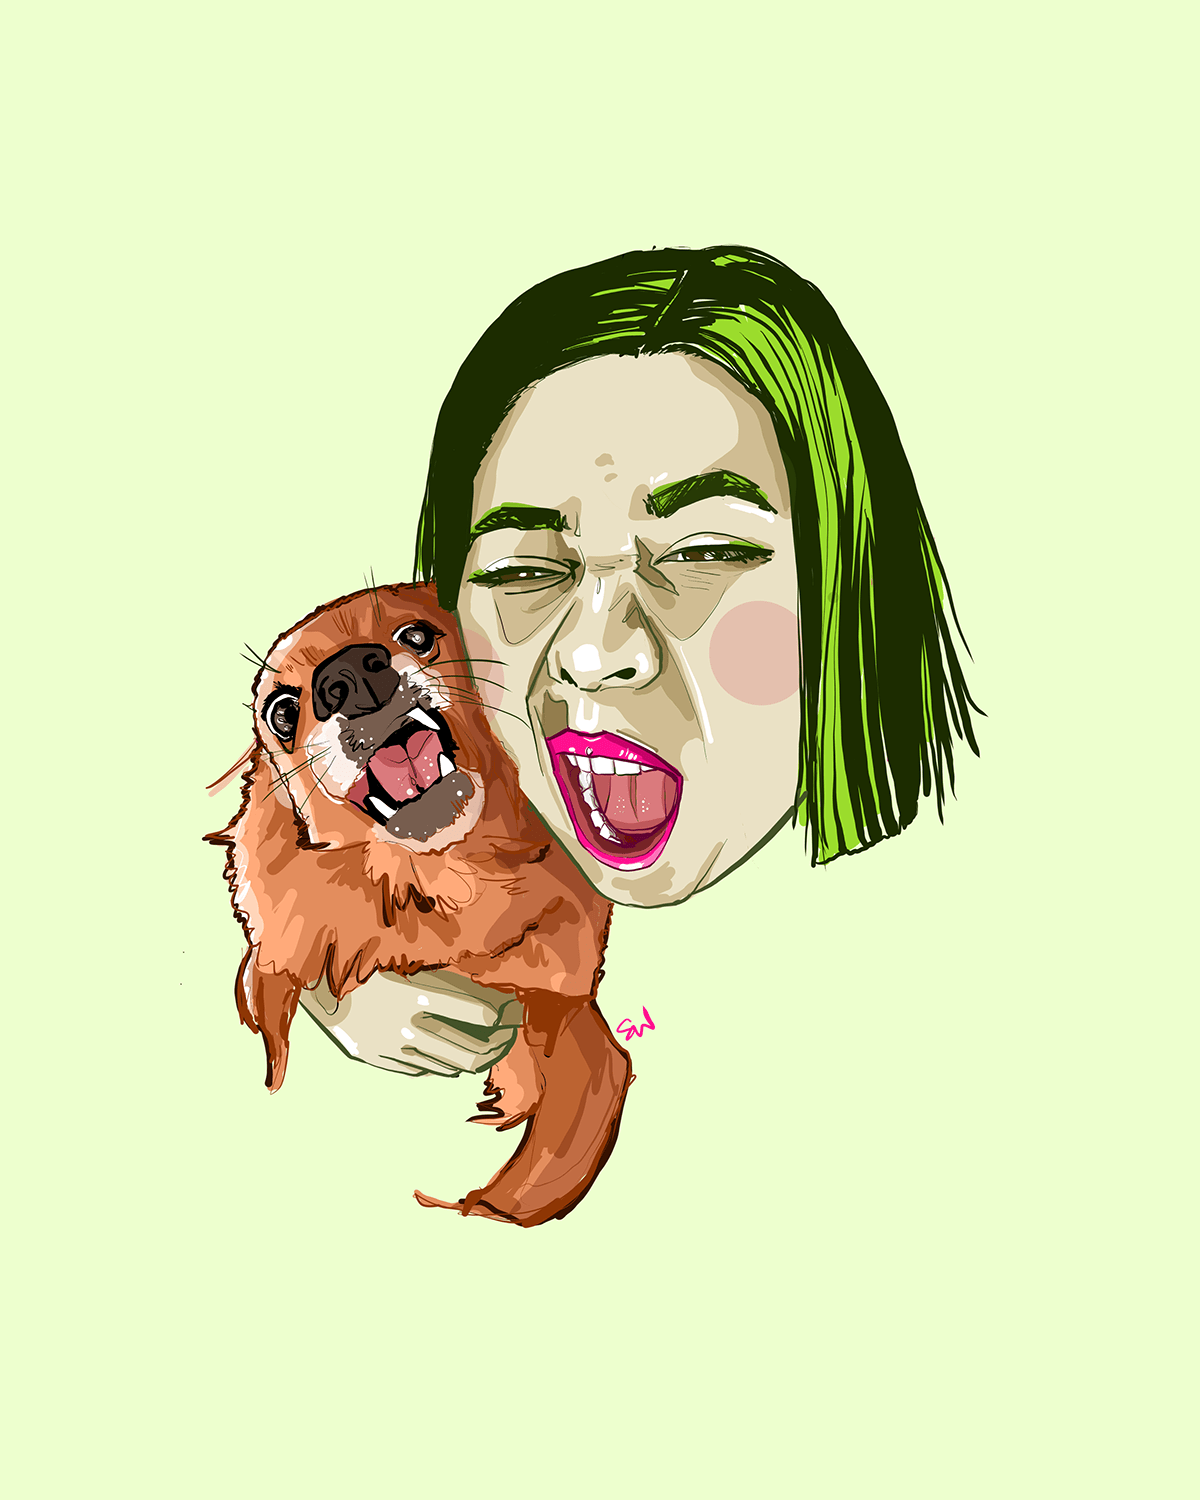 woman with green hair and red-brown dog show their teeth